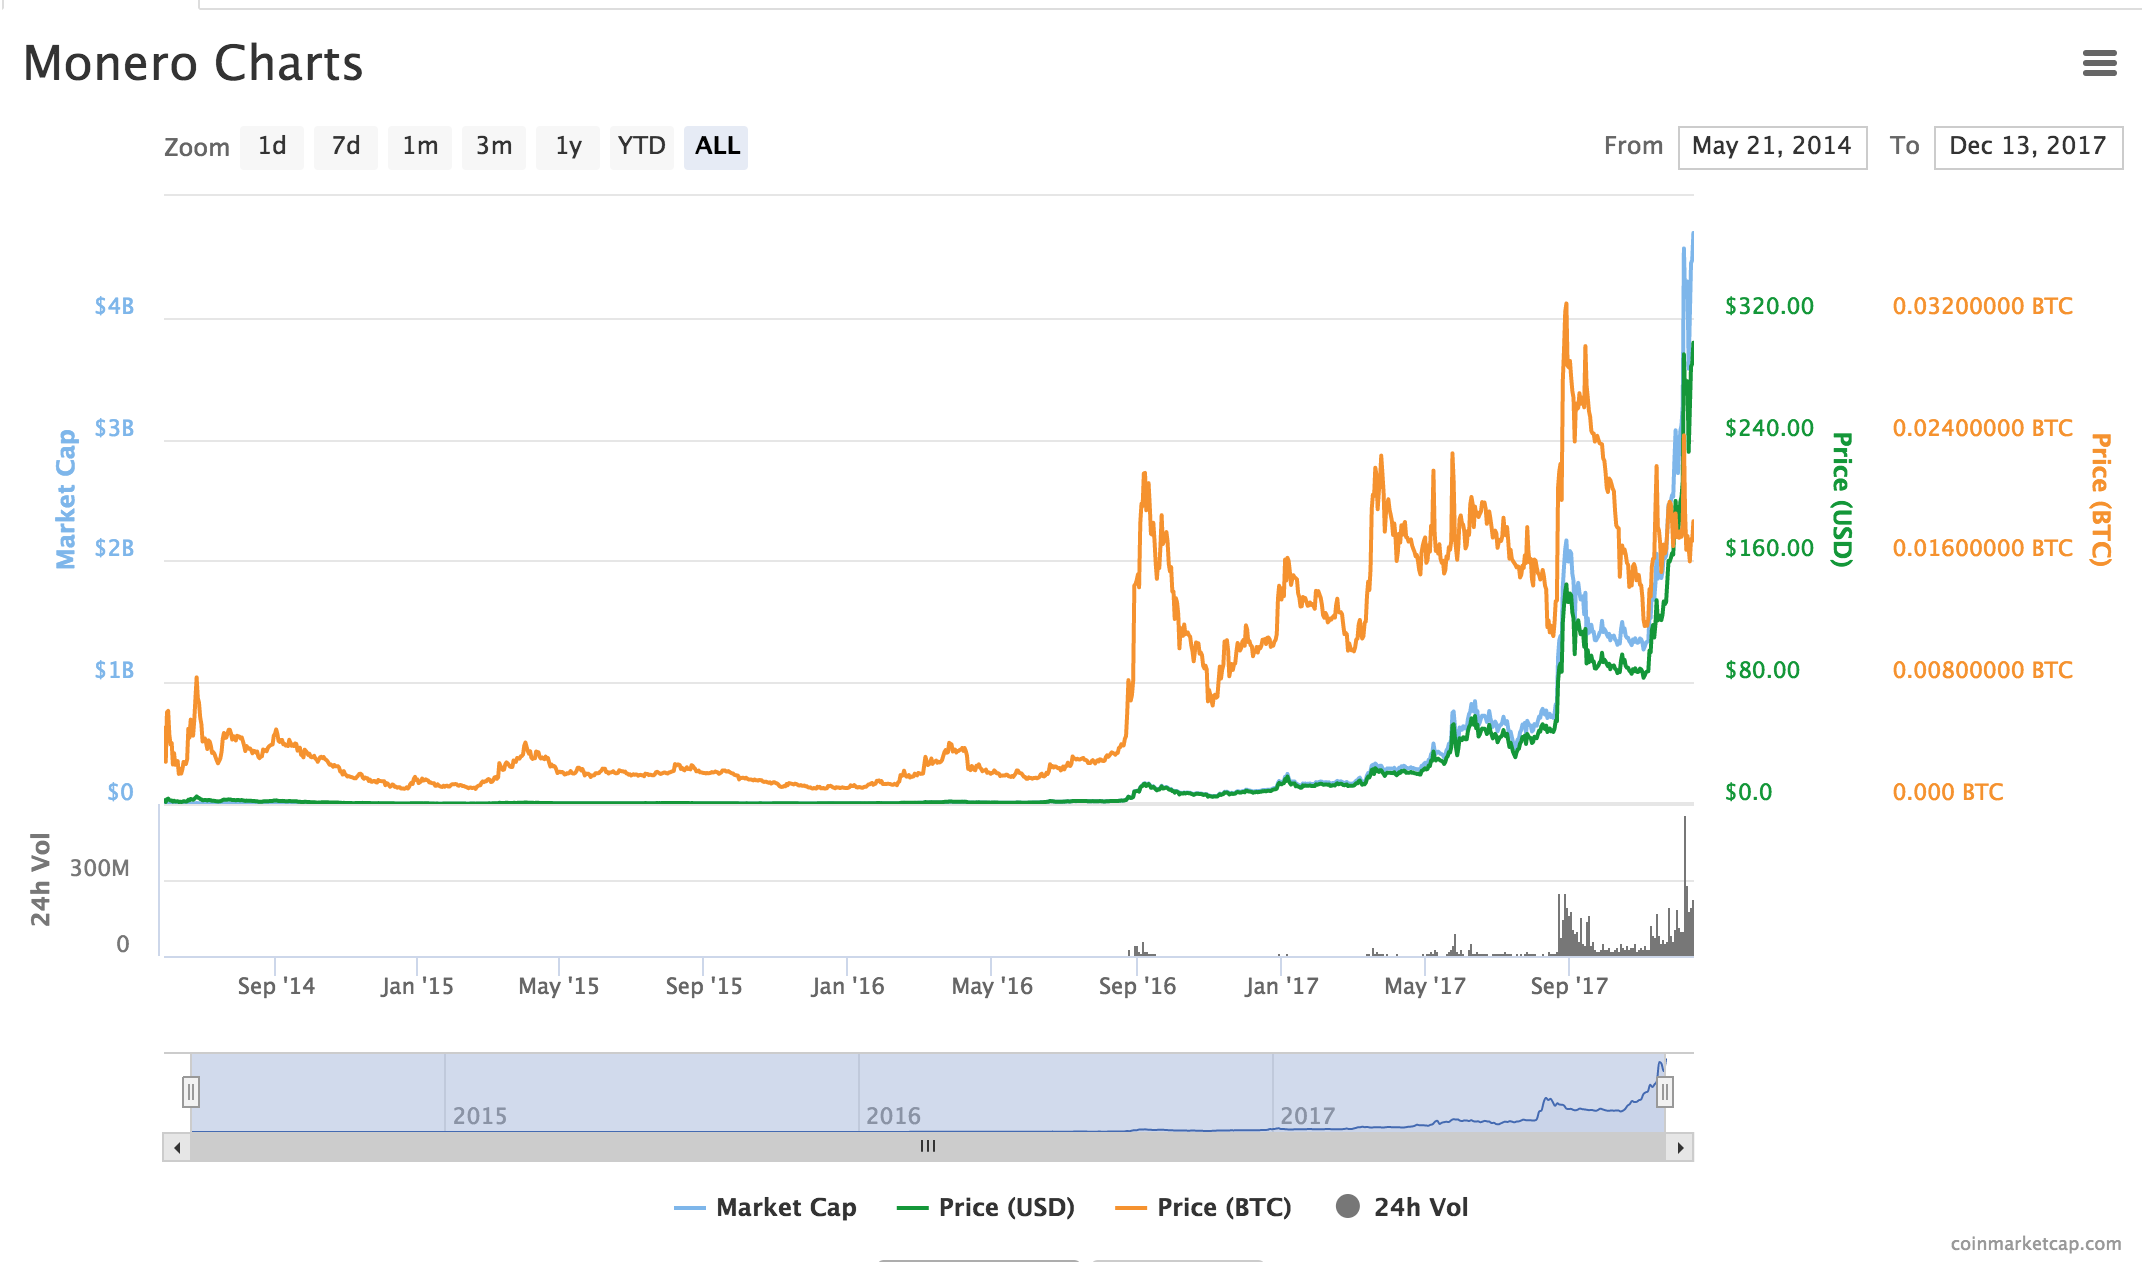 Monero price graph